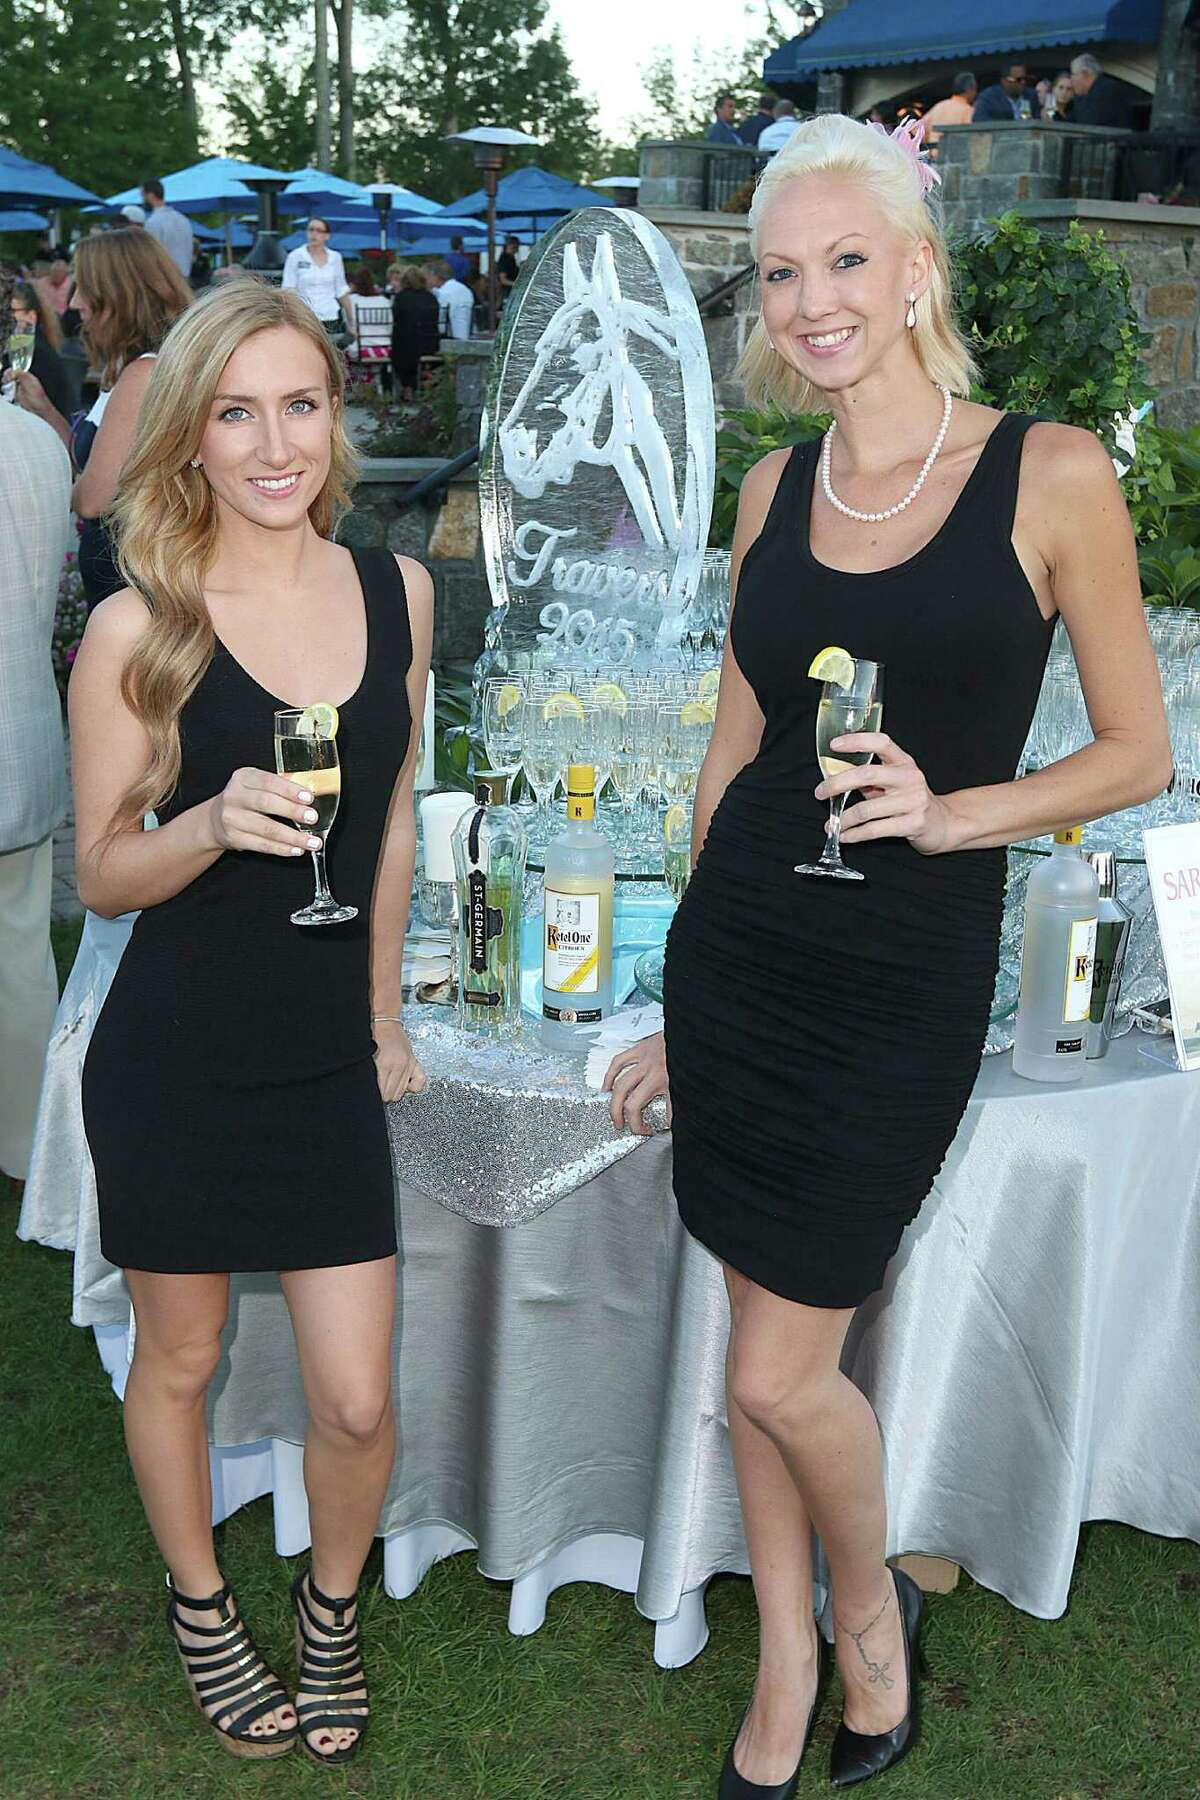 Were you Seen at The Travers Celebration at Saratoga National Golf Course in Saratoga Springs on Thursday, Aug. 27, 2015?